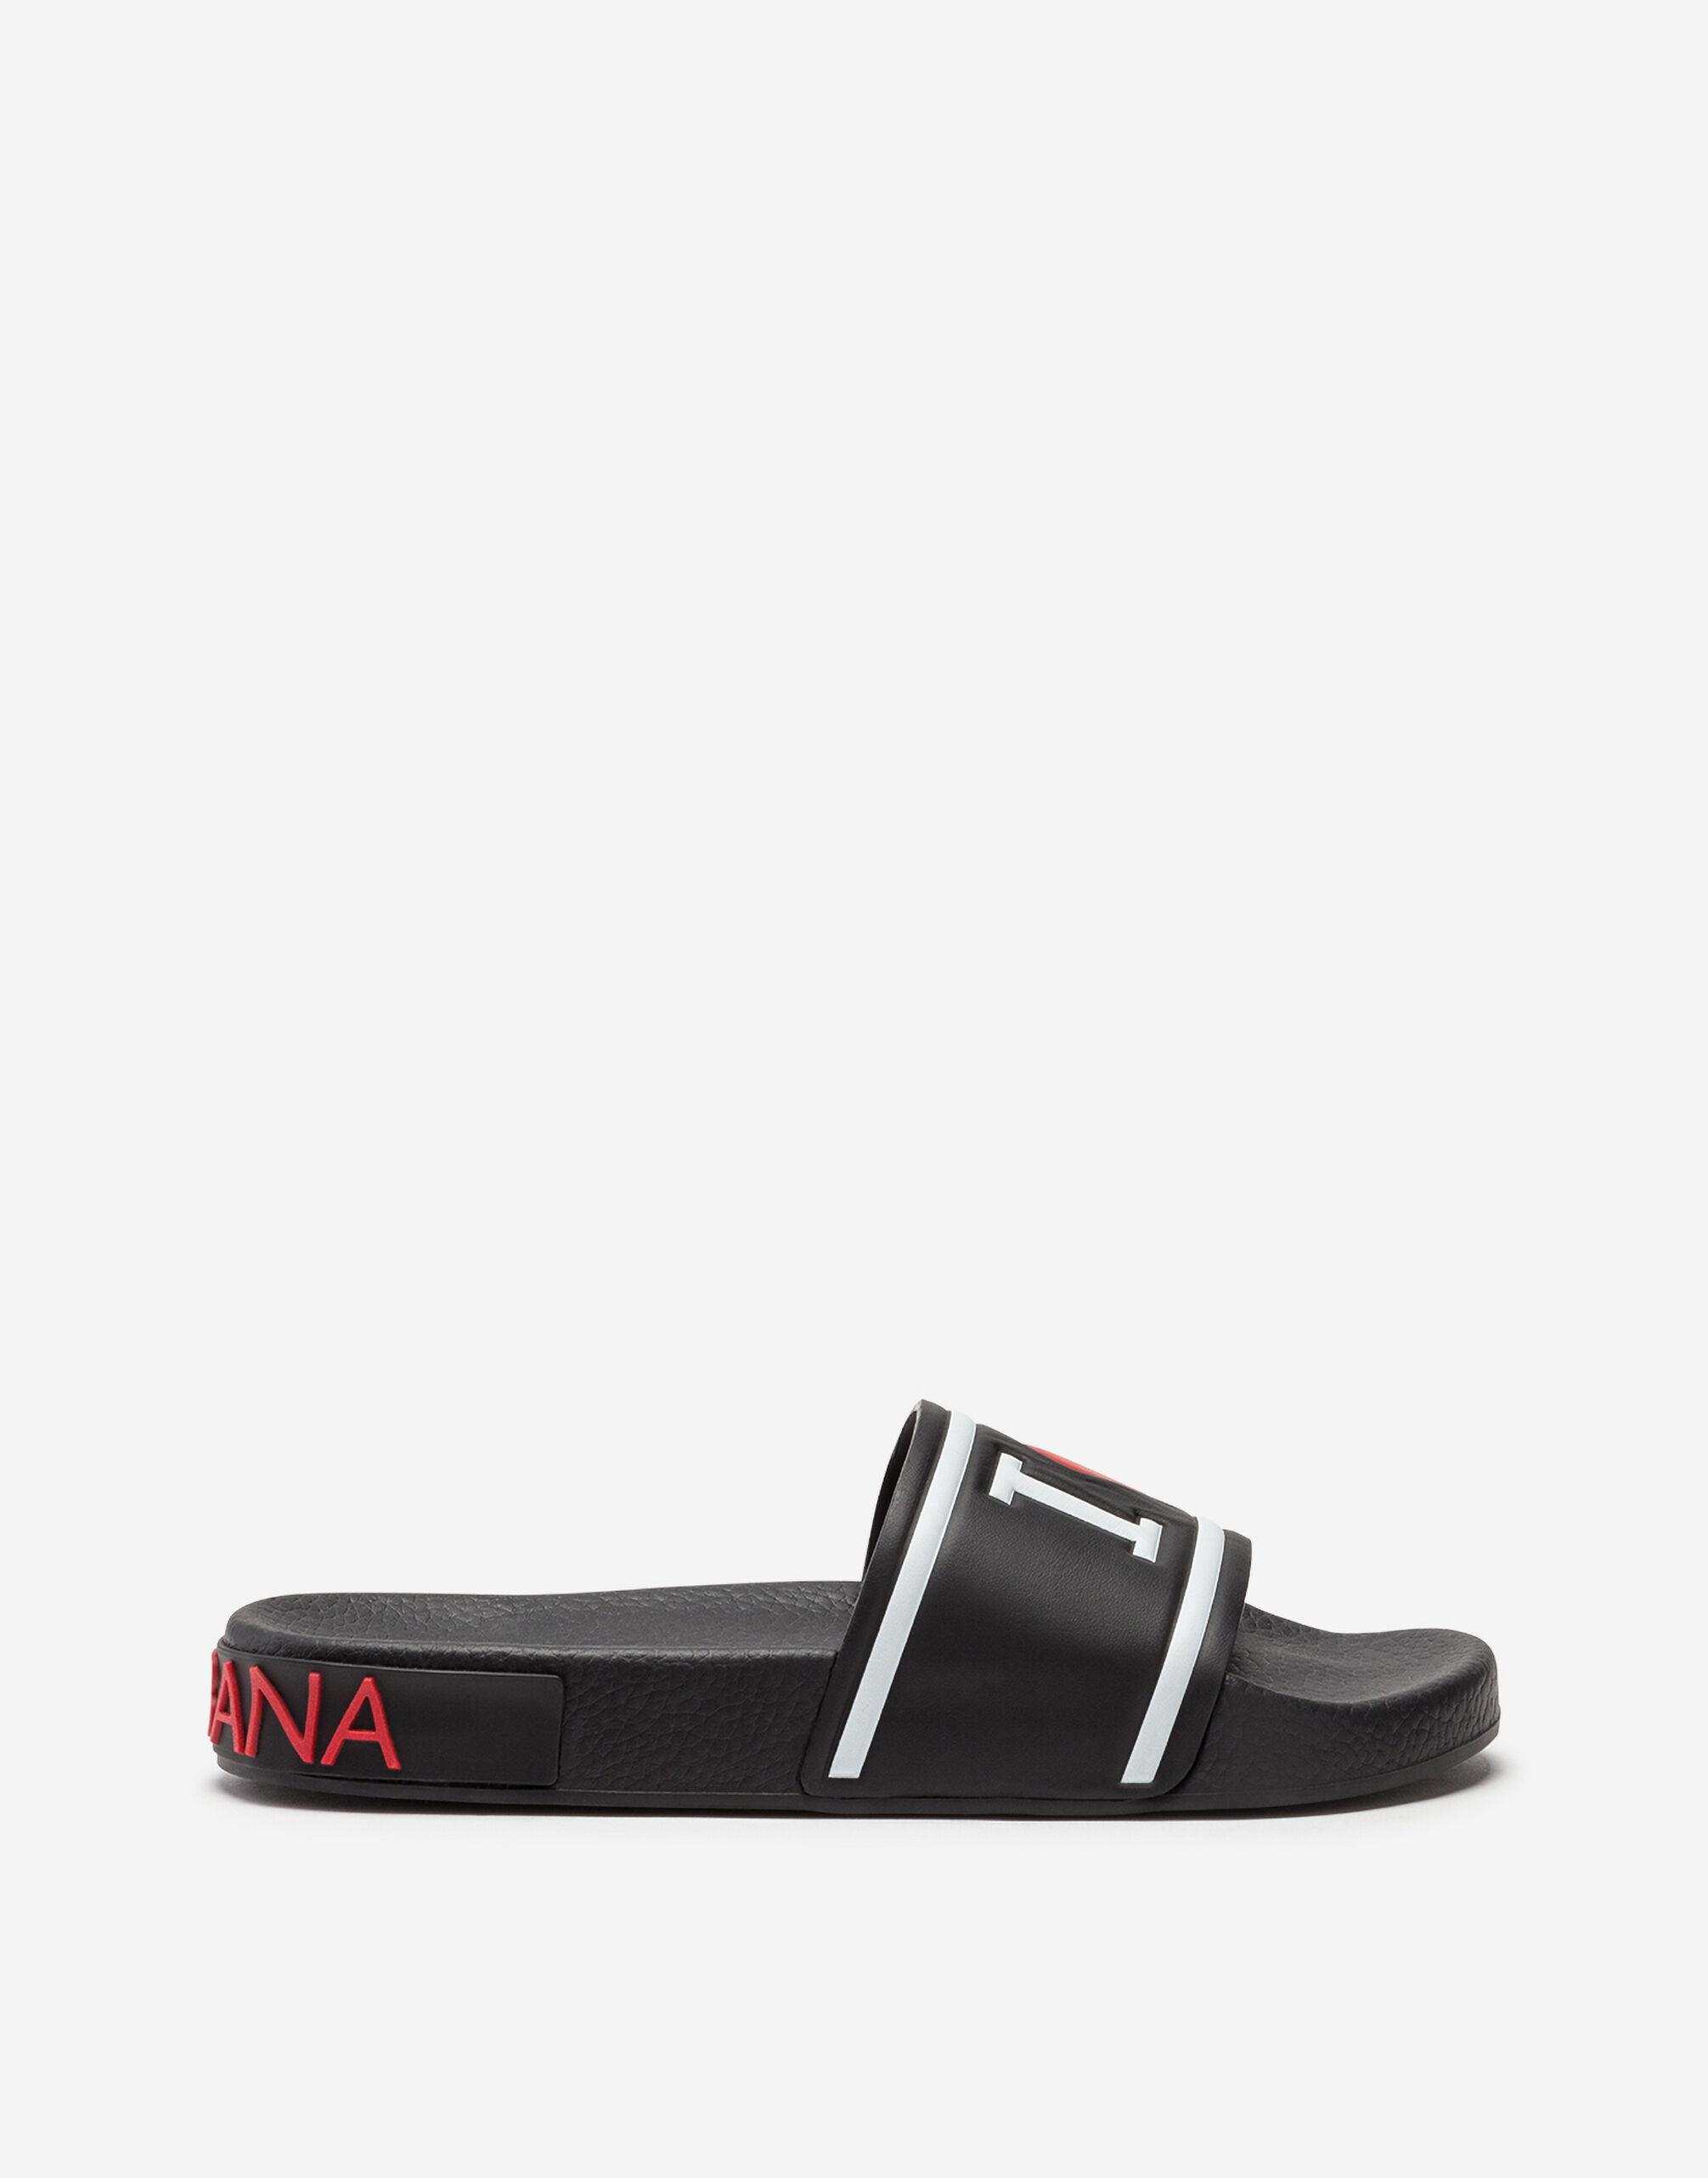 Rubber and calfskin sliders with high-frequency detailing